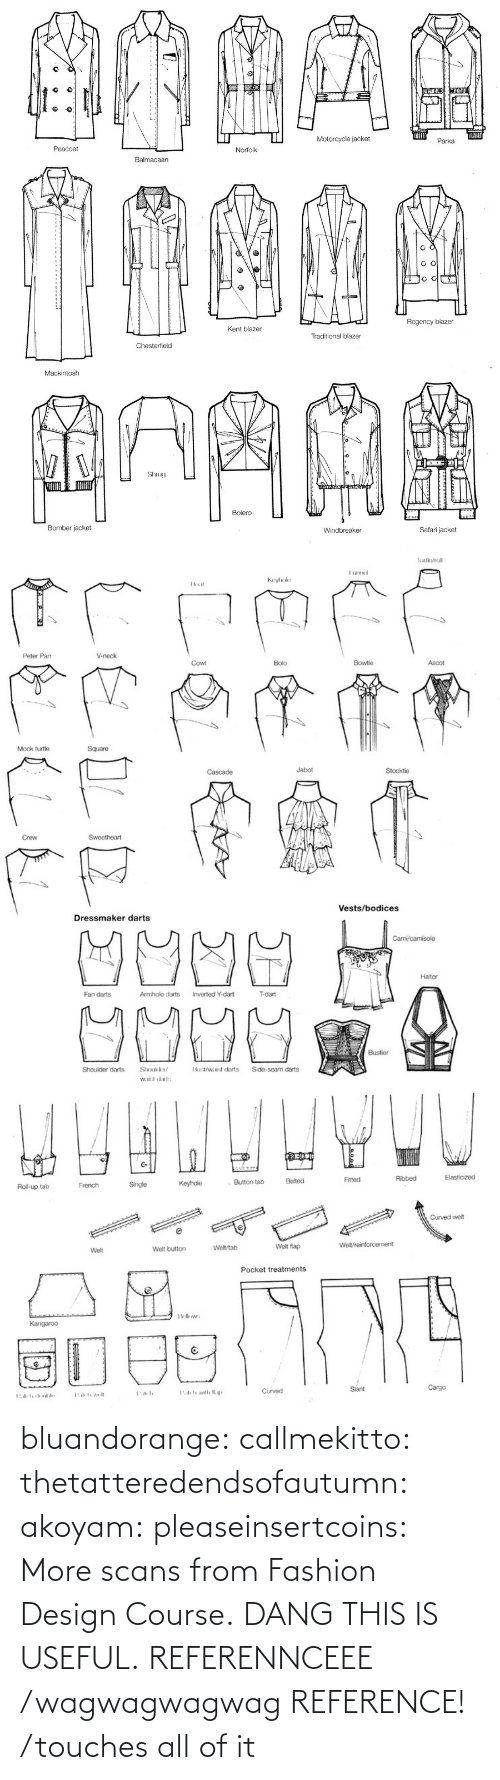 Techniques: bluandorange:  callmekitto:  thetatteredendsofautumn:  akoyam:  pleaseinsertcoins:  More scans from Fashion Design Course.  DANG THIS IS USEFUL.  REFERENNCEEE  /wagwagwagwag REFERENCE!  /touches all of it